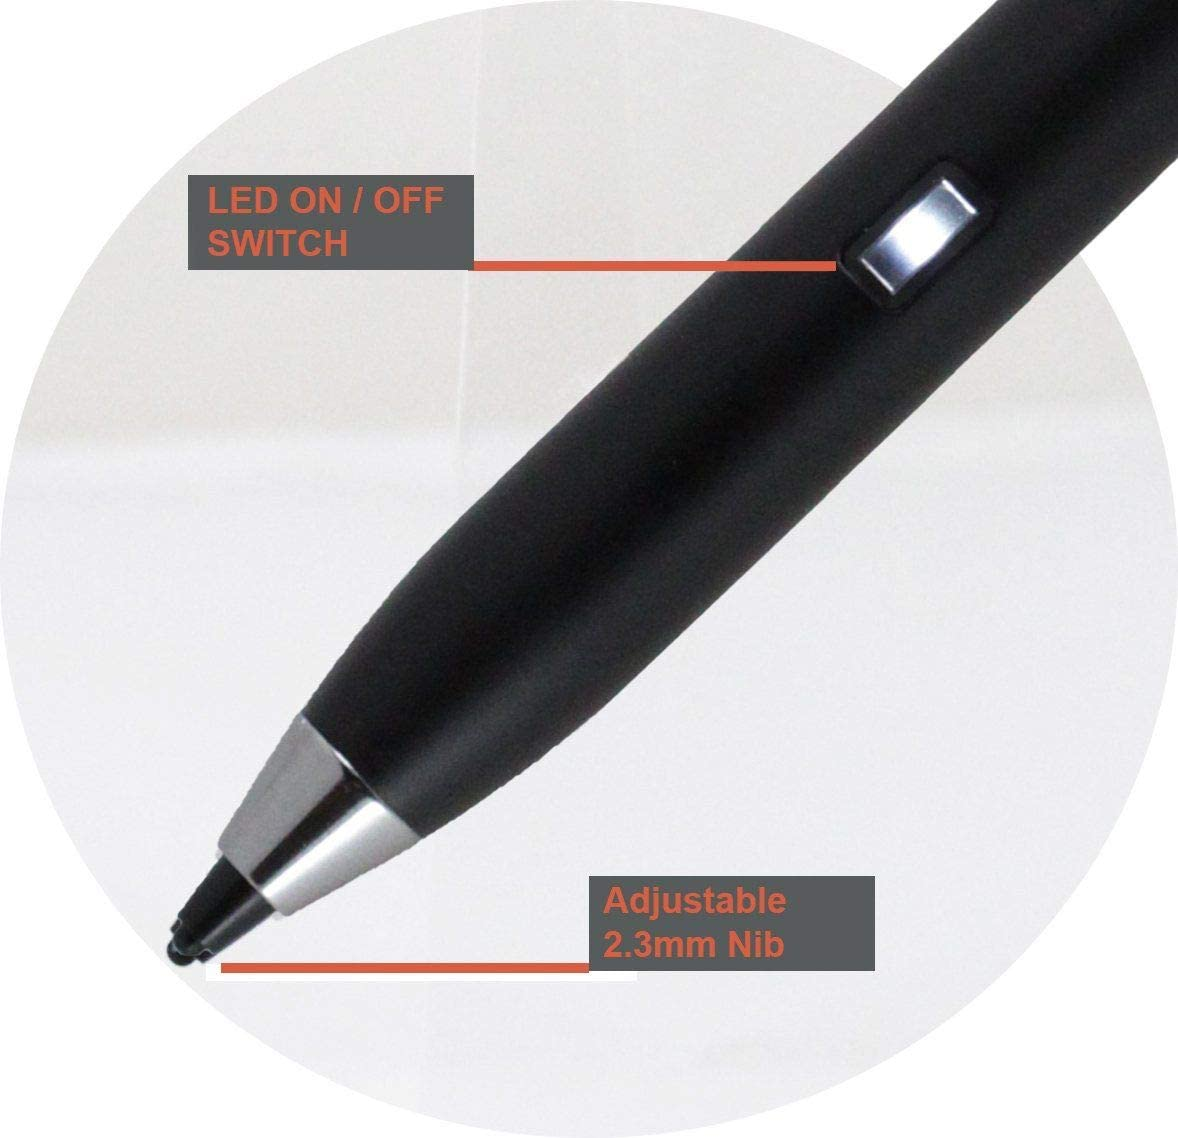 Broonel Black Fine Point Digital Active Stylus Pen Compatible with The ASUS TUF504GD-E4606T Portable Gaming Laptop 15